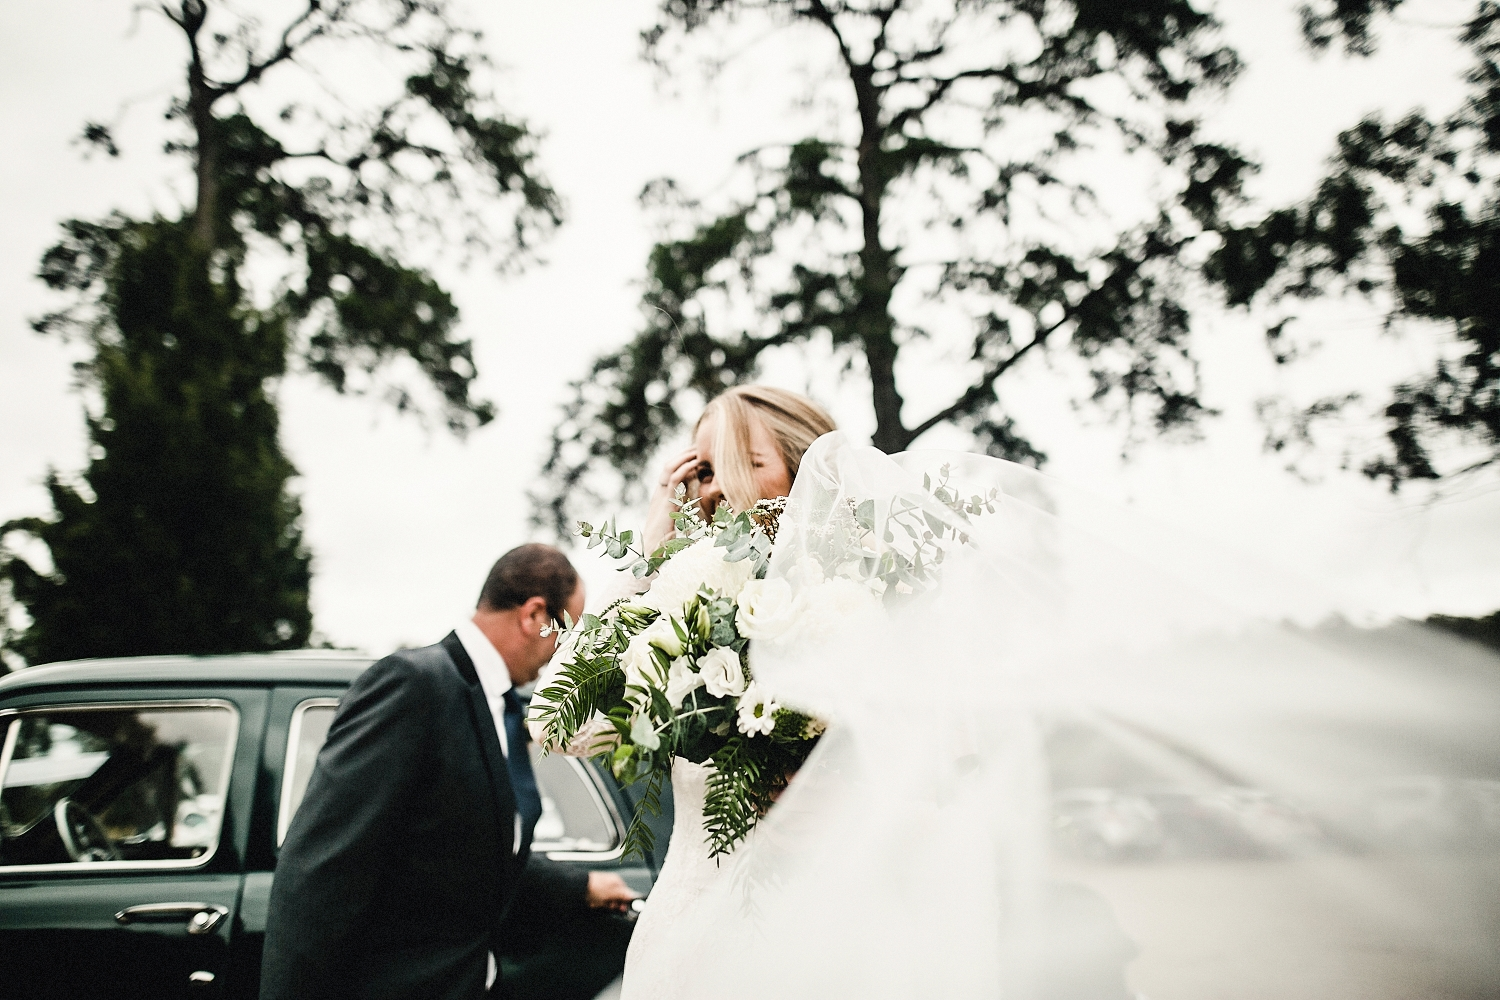 Squarespace_Wedding_Folio-LR-061AE.jpg